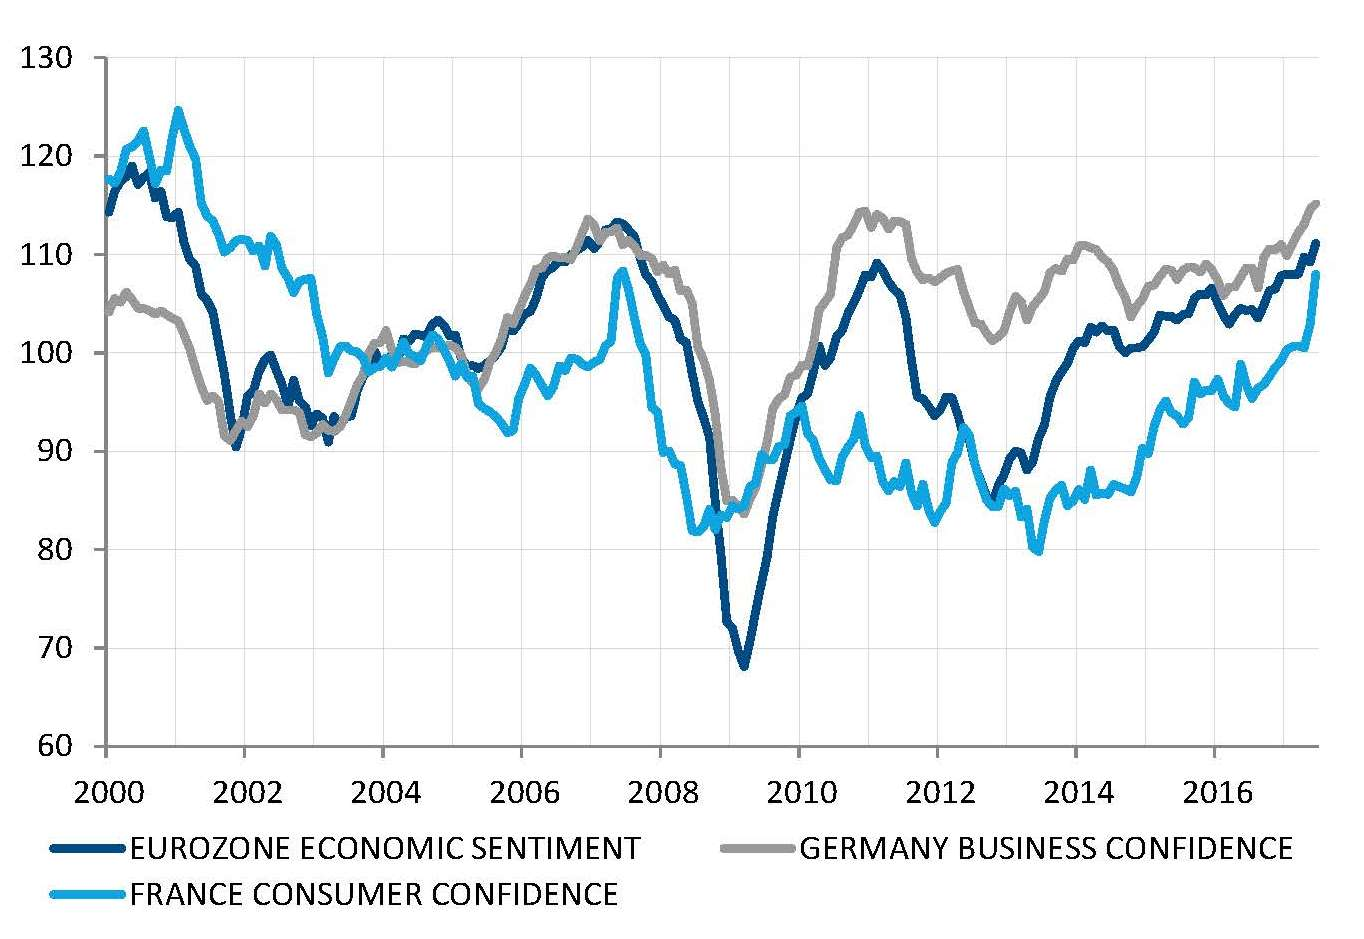 Confidence surges in Europe